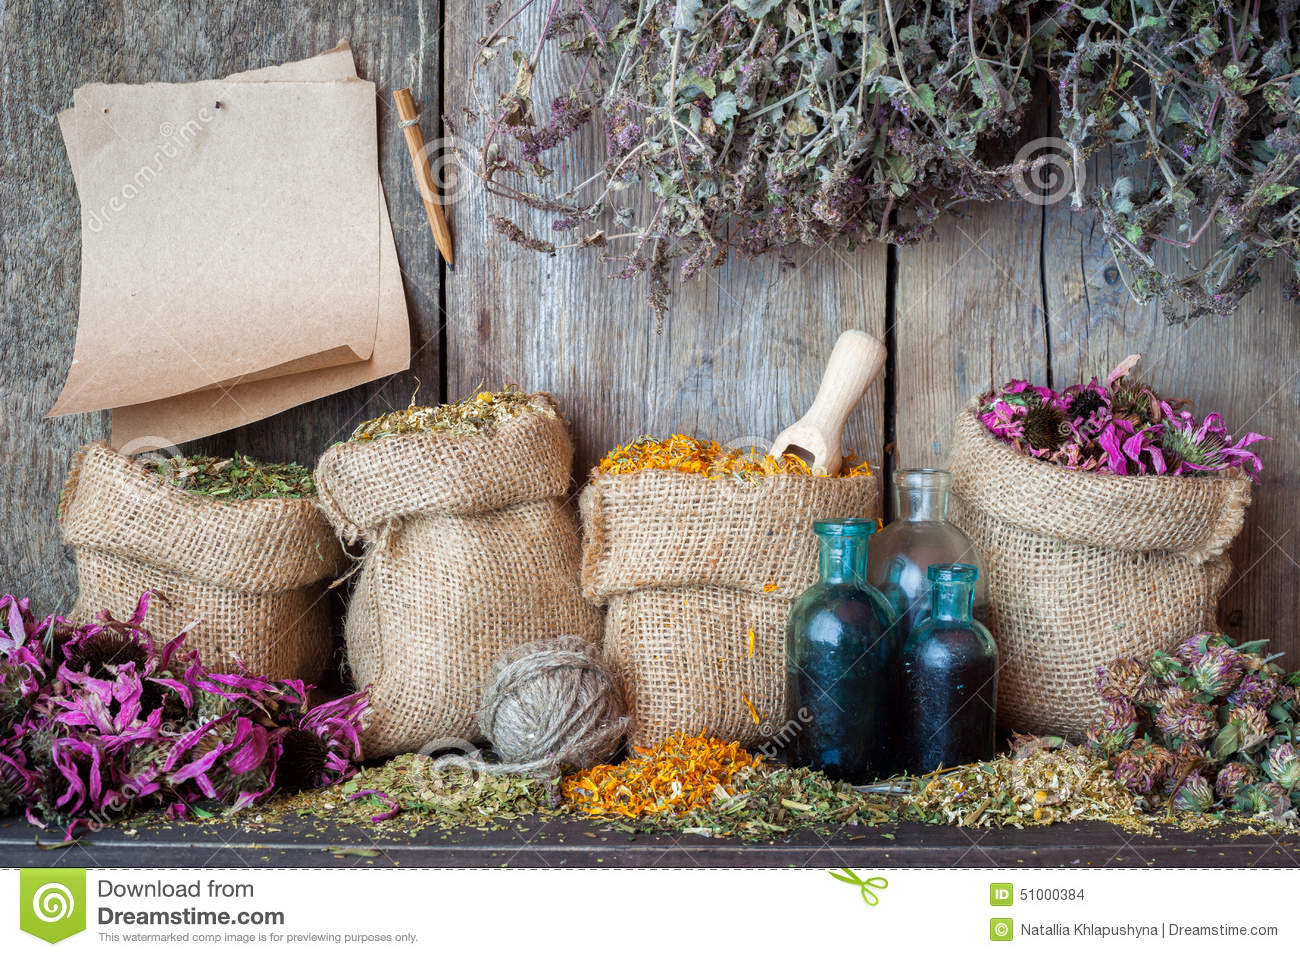 Healing herbs in hessian bags, paper sheet and bottles